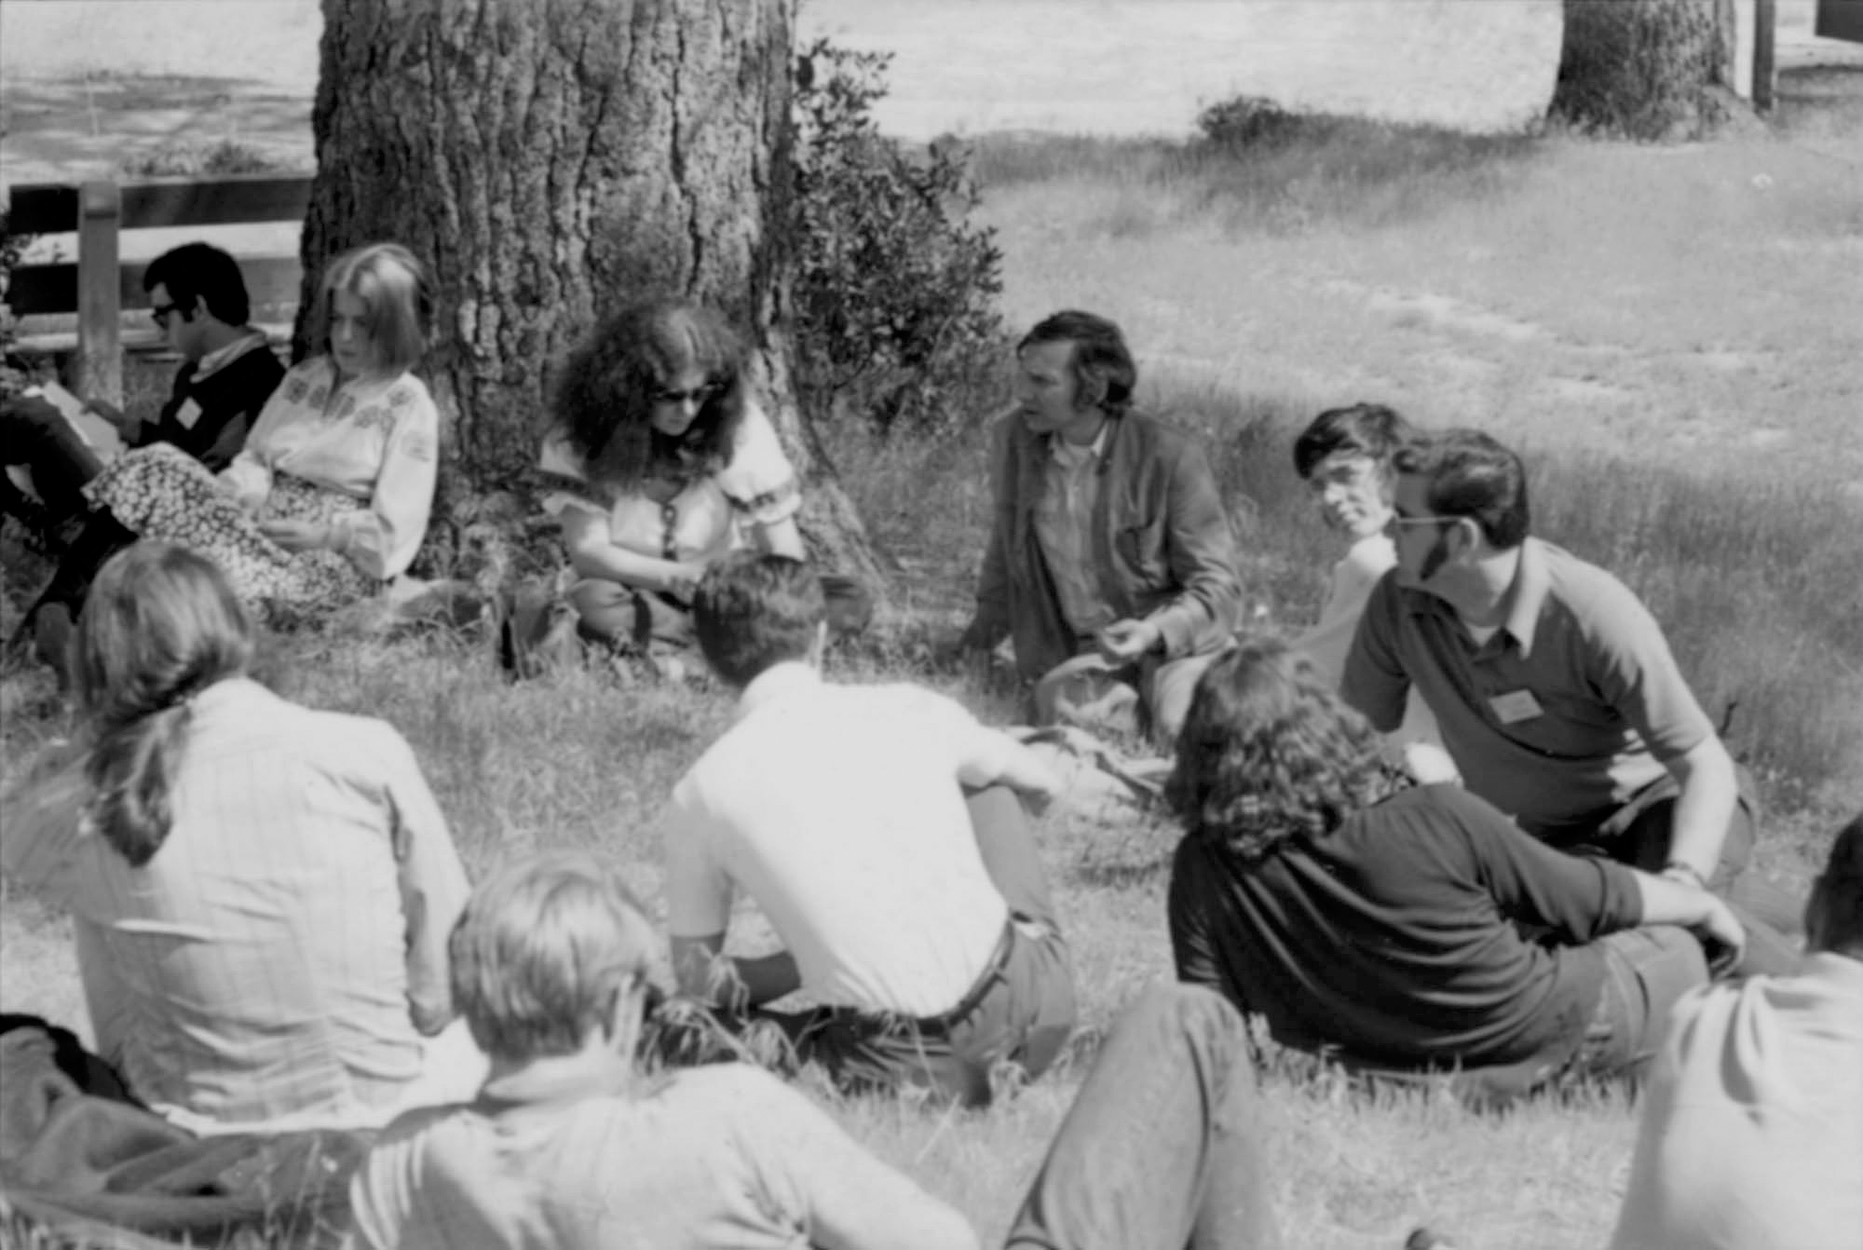 Paul Brach (center), dean of art, at the CalArts faculty retreat in Idyllwild, CA, 1971. Photo: Barry Hyams. Courtesy of the California Institute of the Arts Archive.